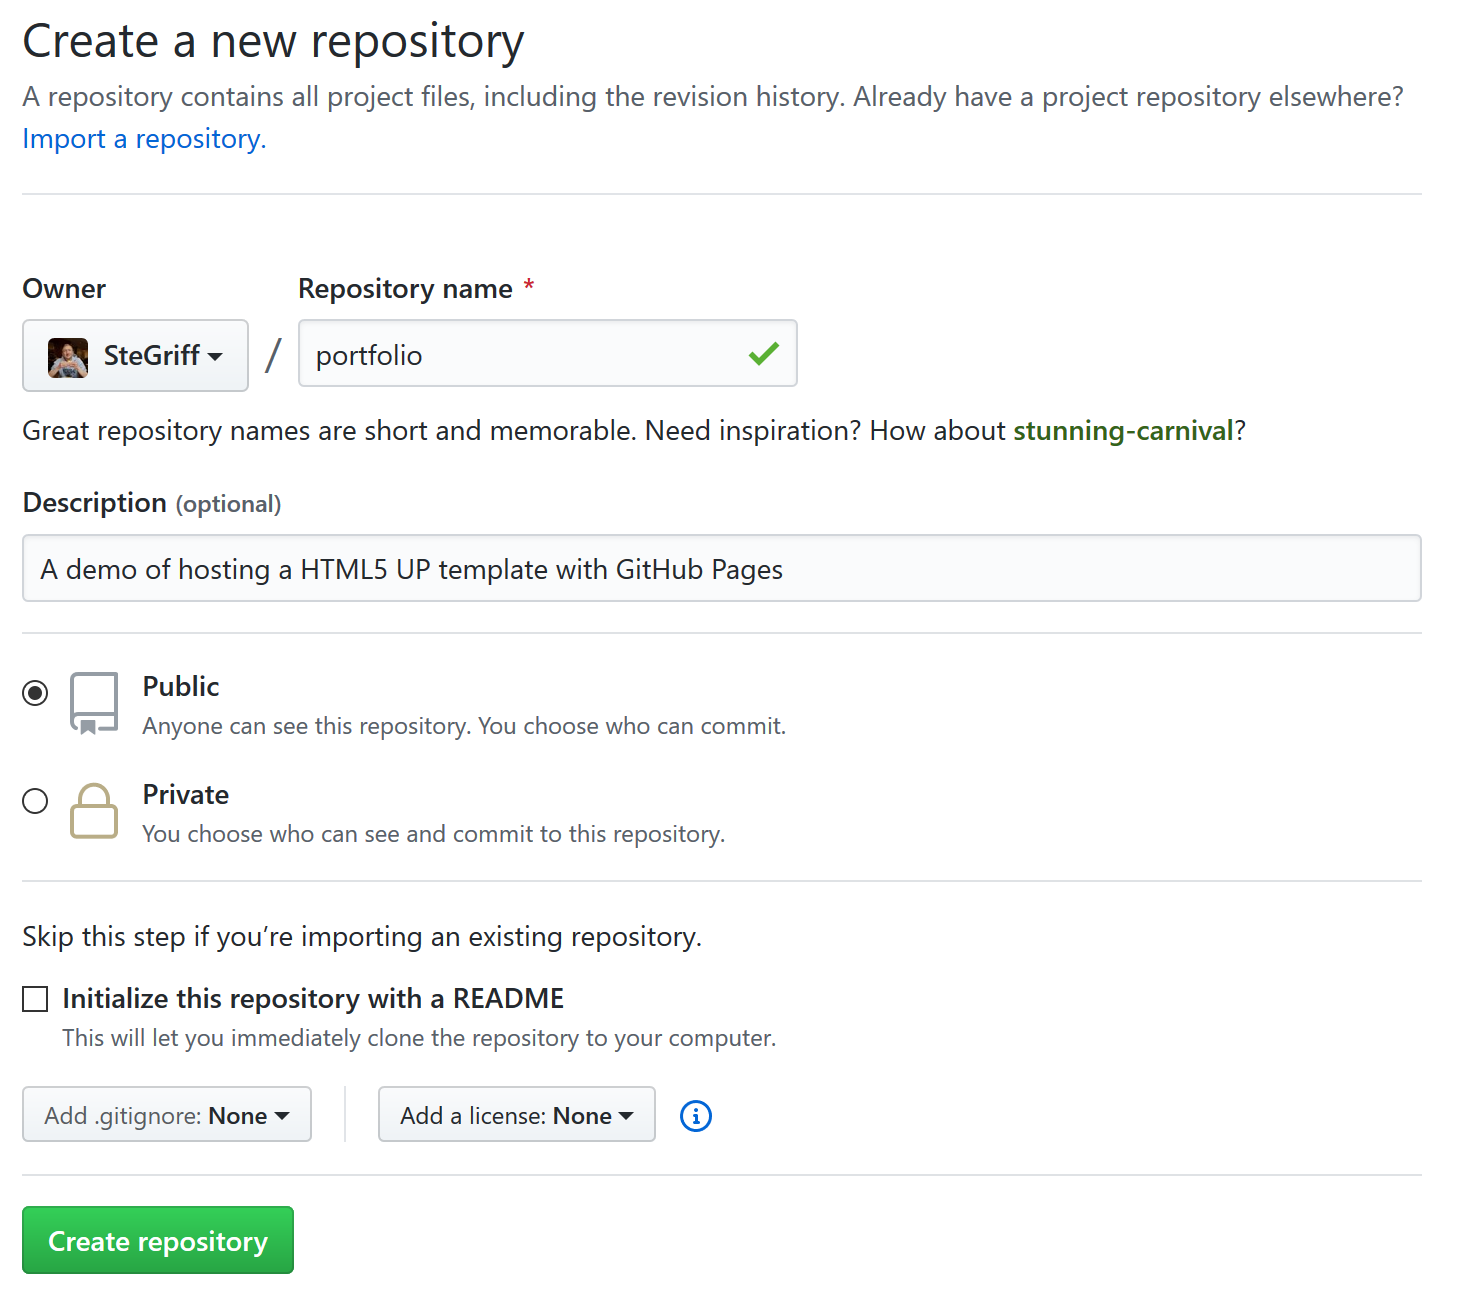 Name and settings for new GitHub repository